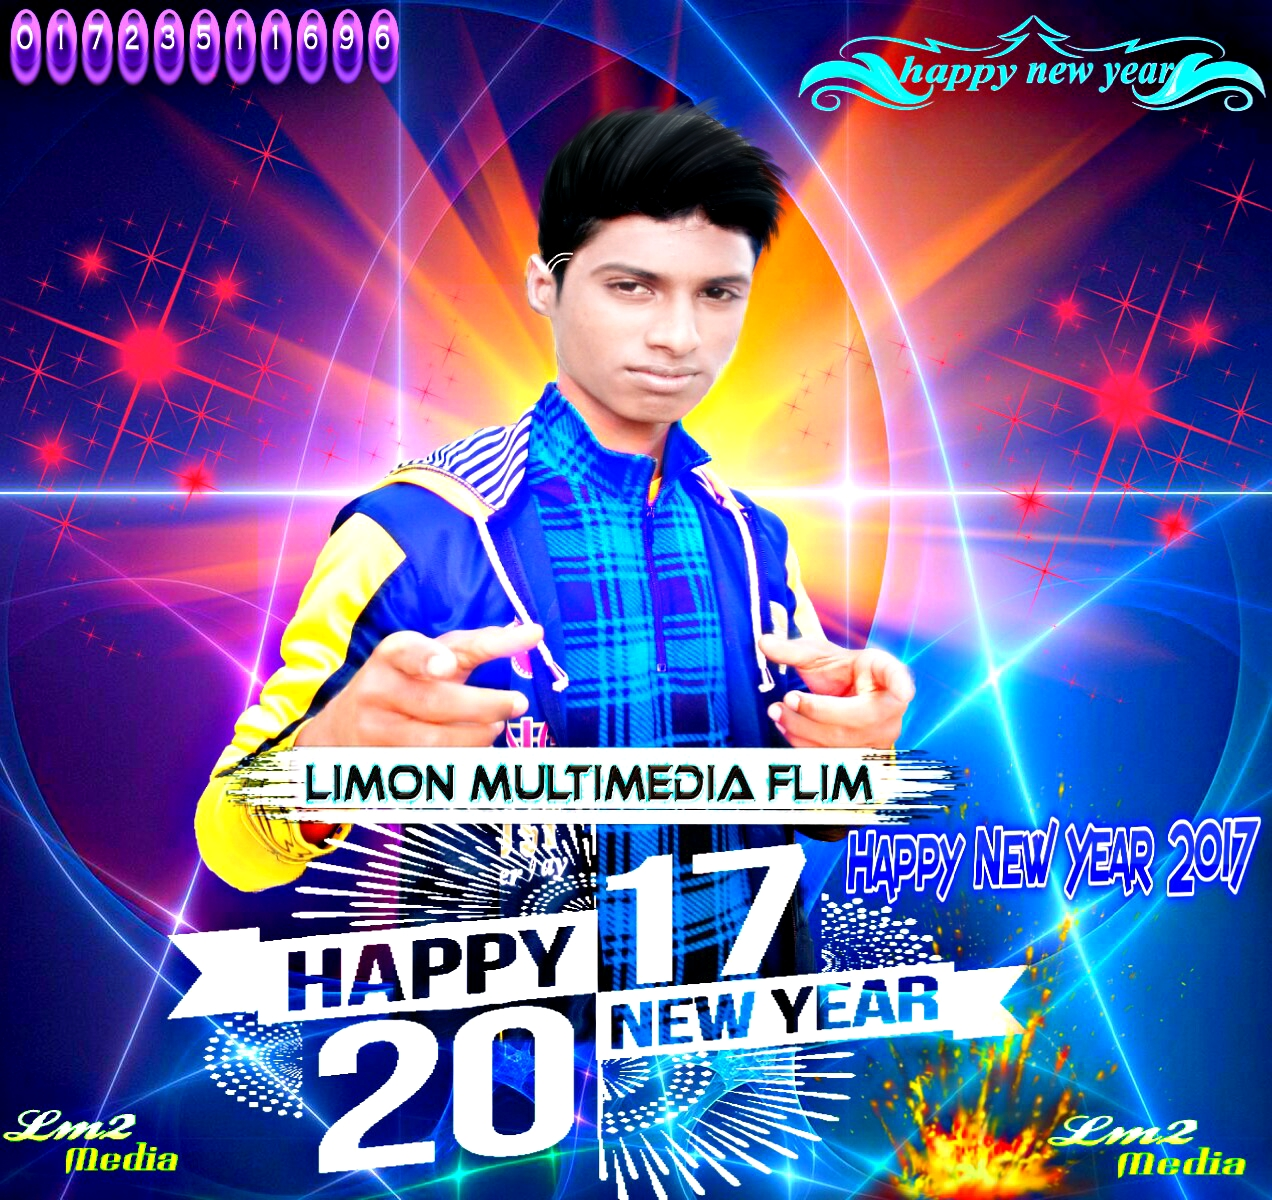 Limon multimedi